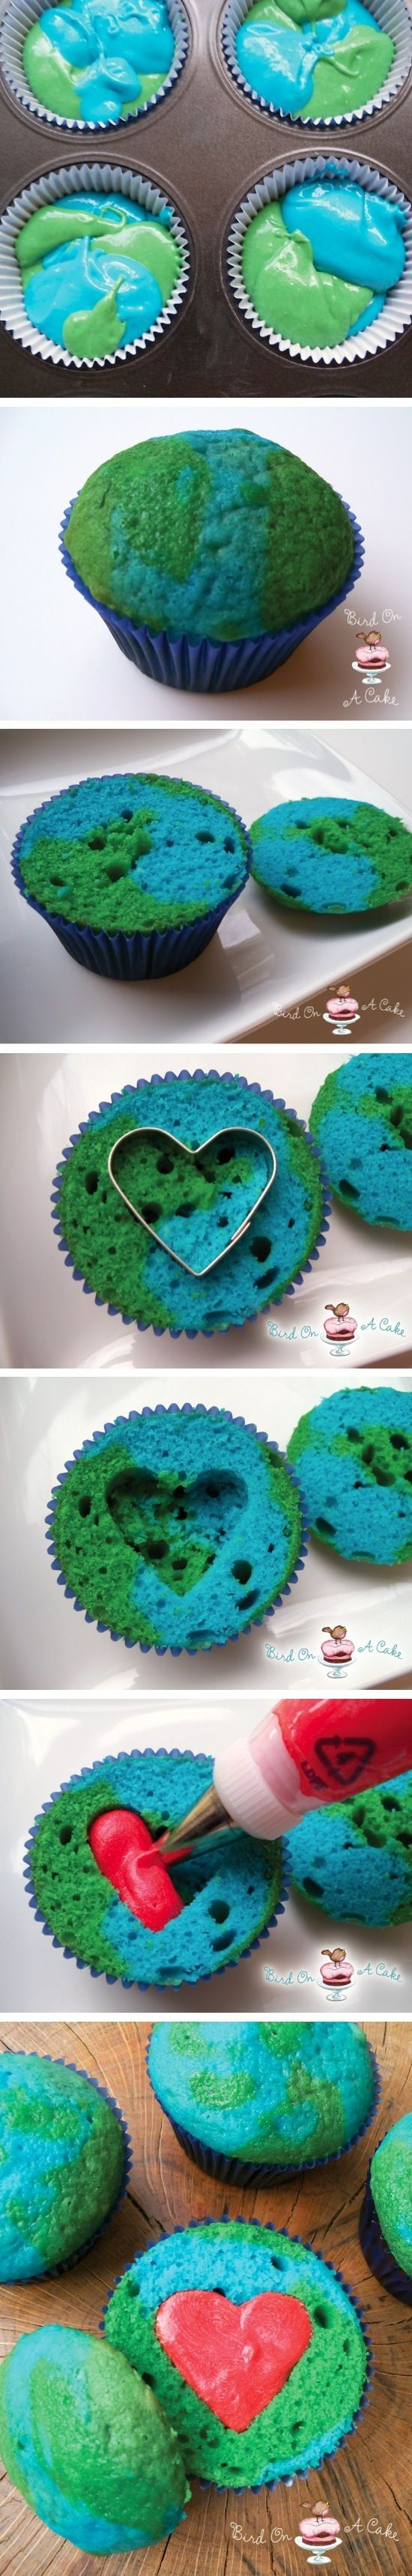 Prepare a white cake mix.Divide your cake batter into 2 bowls.Color one bowl of batter green, and the other blue.Line your cupcake pan with baking cups.Alternating colors, drop spoonfuls of batter into the cups.